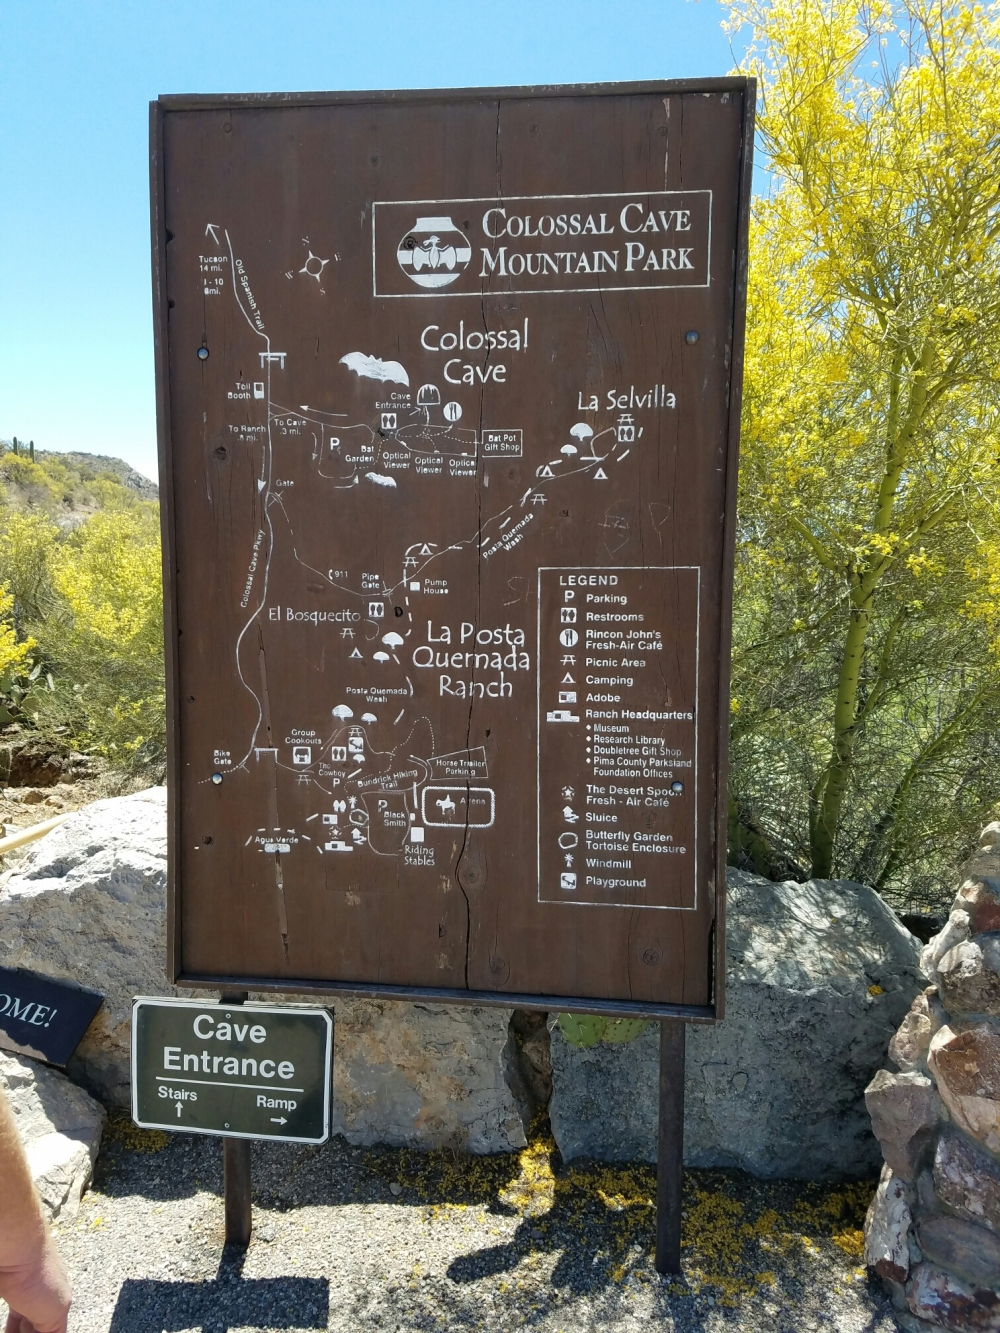 Collosal Cave Mountain Park is on the National Register of Historic Places